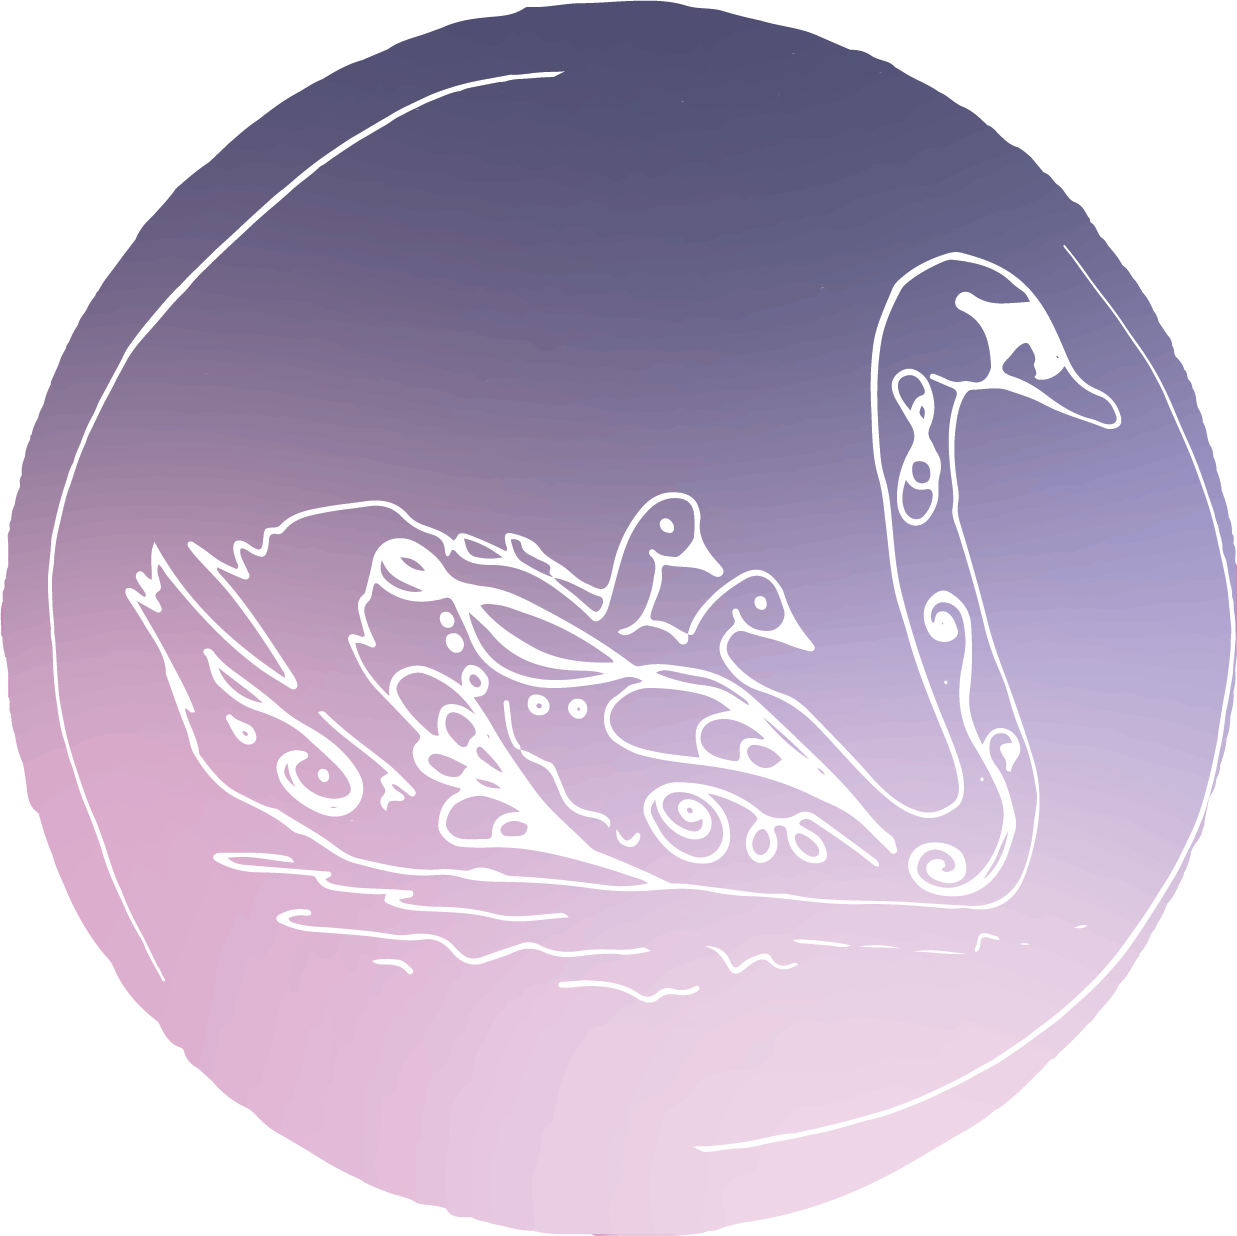 Universal Swan - types of parenting style